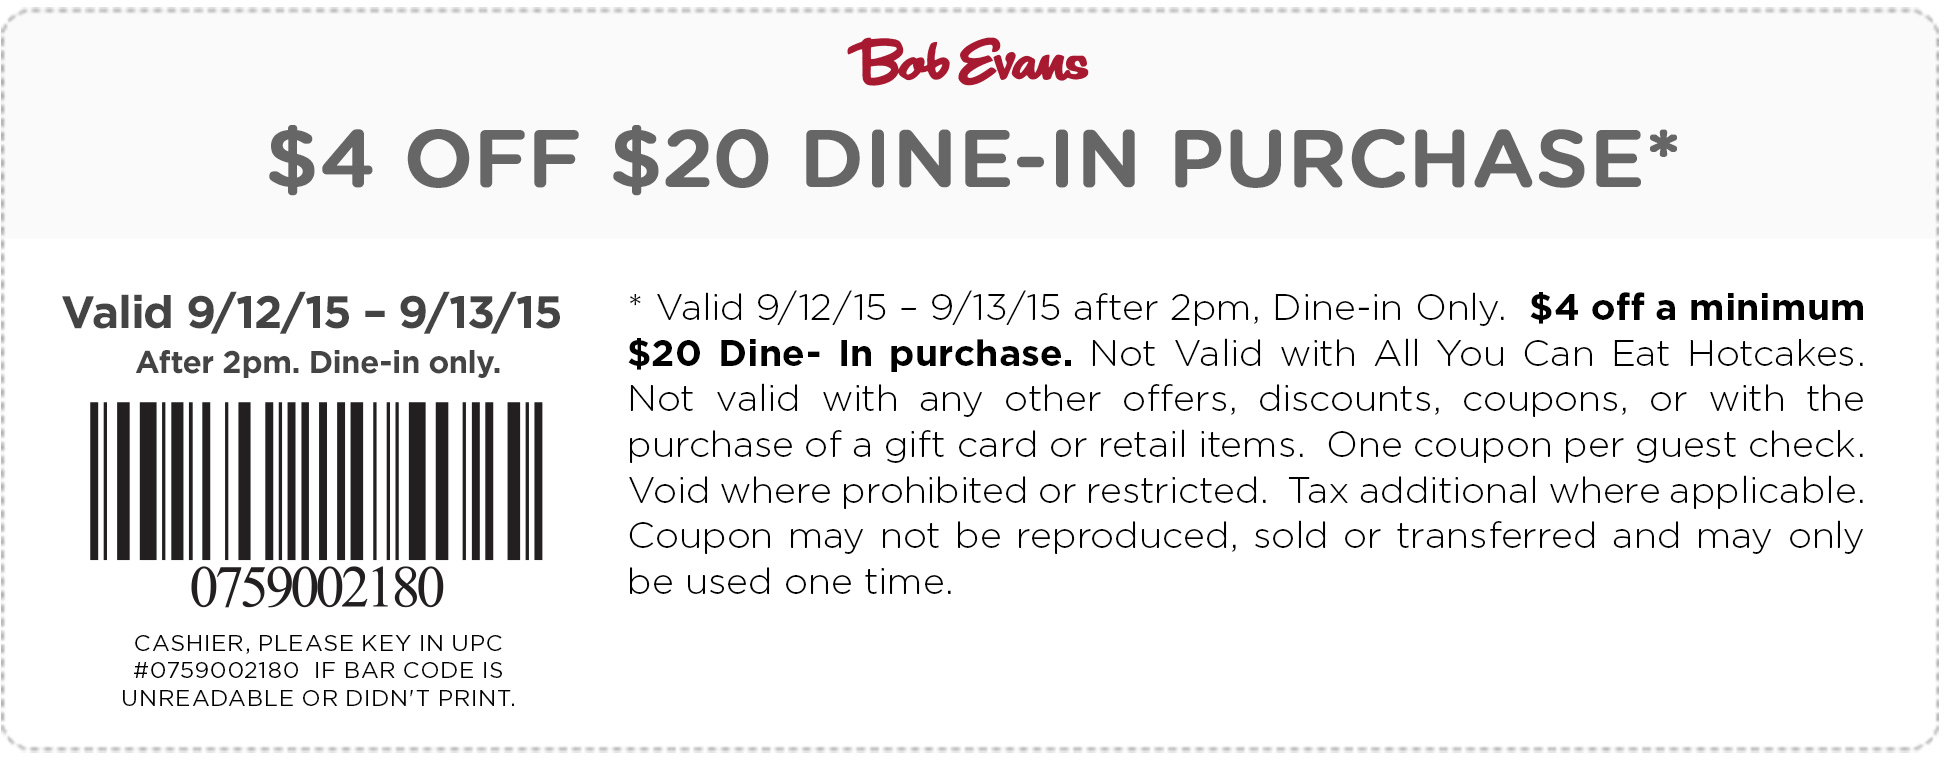 Bob Evans Coupon December 2017 $4 off $20 after 2pm at Bob Evans restaurants